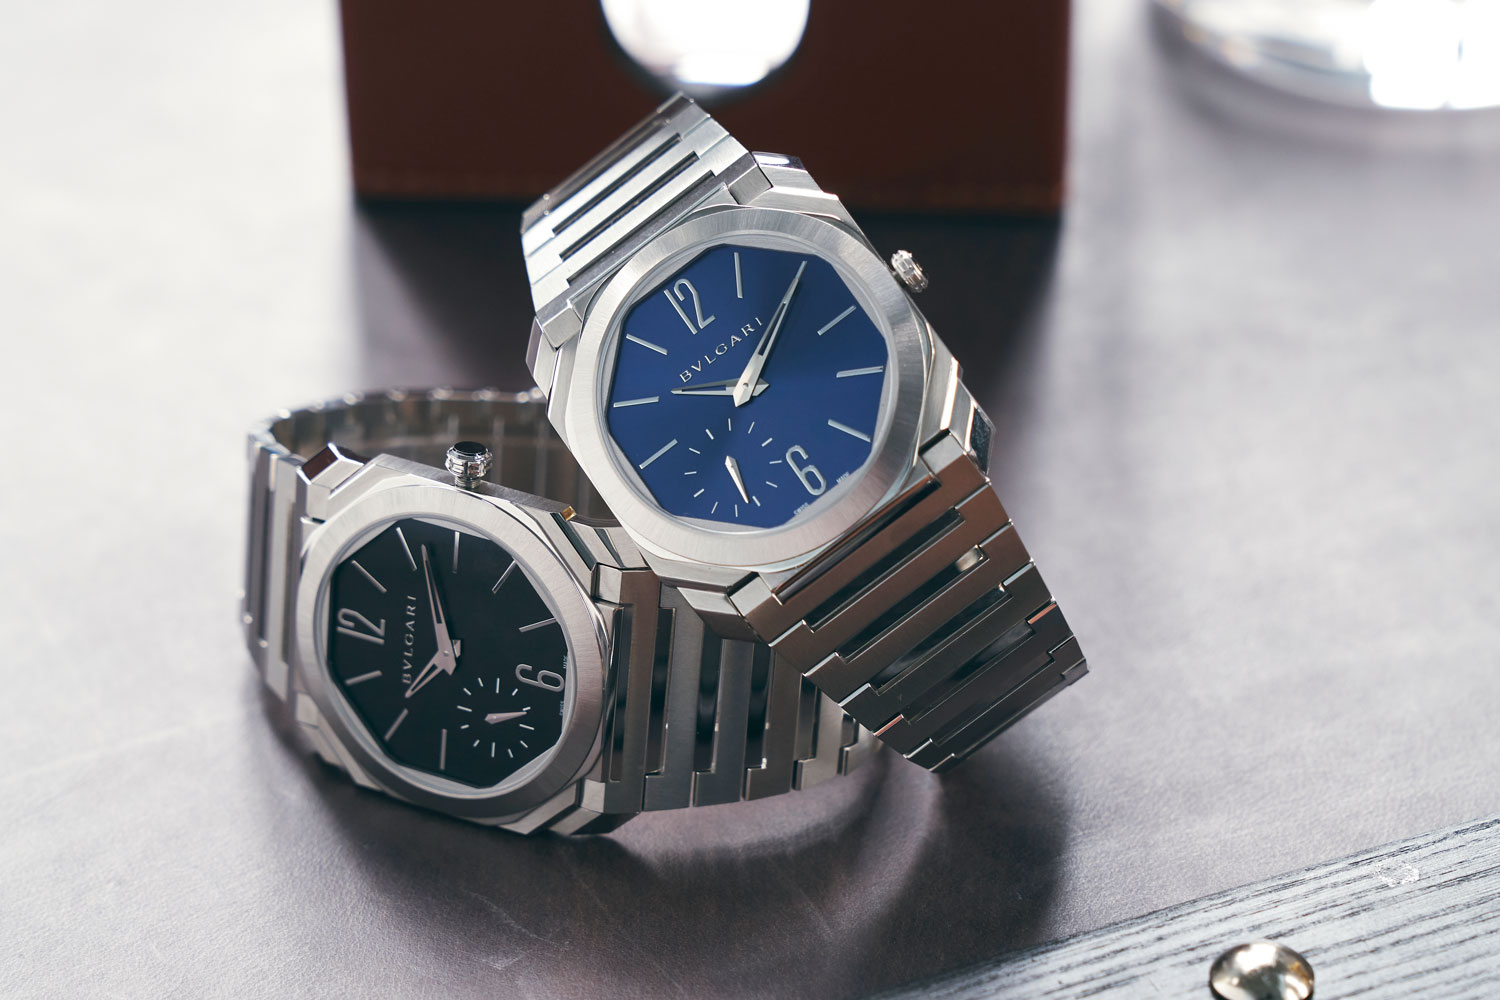 The new Octo Finissimo in satin polished steel are two of Bvlgari's latest releases for the year, in a matte black dial (left) and a blue sunray finished dial (right) (Image © Revolution)